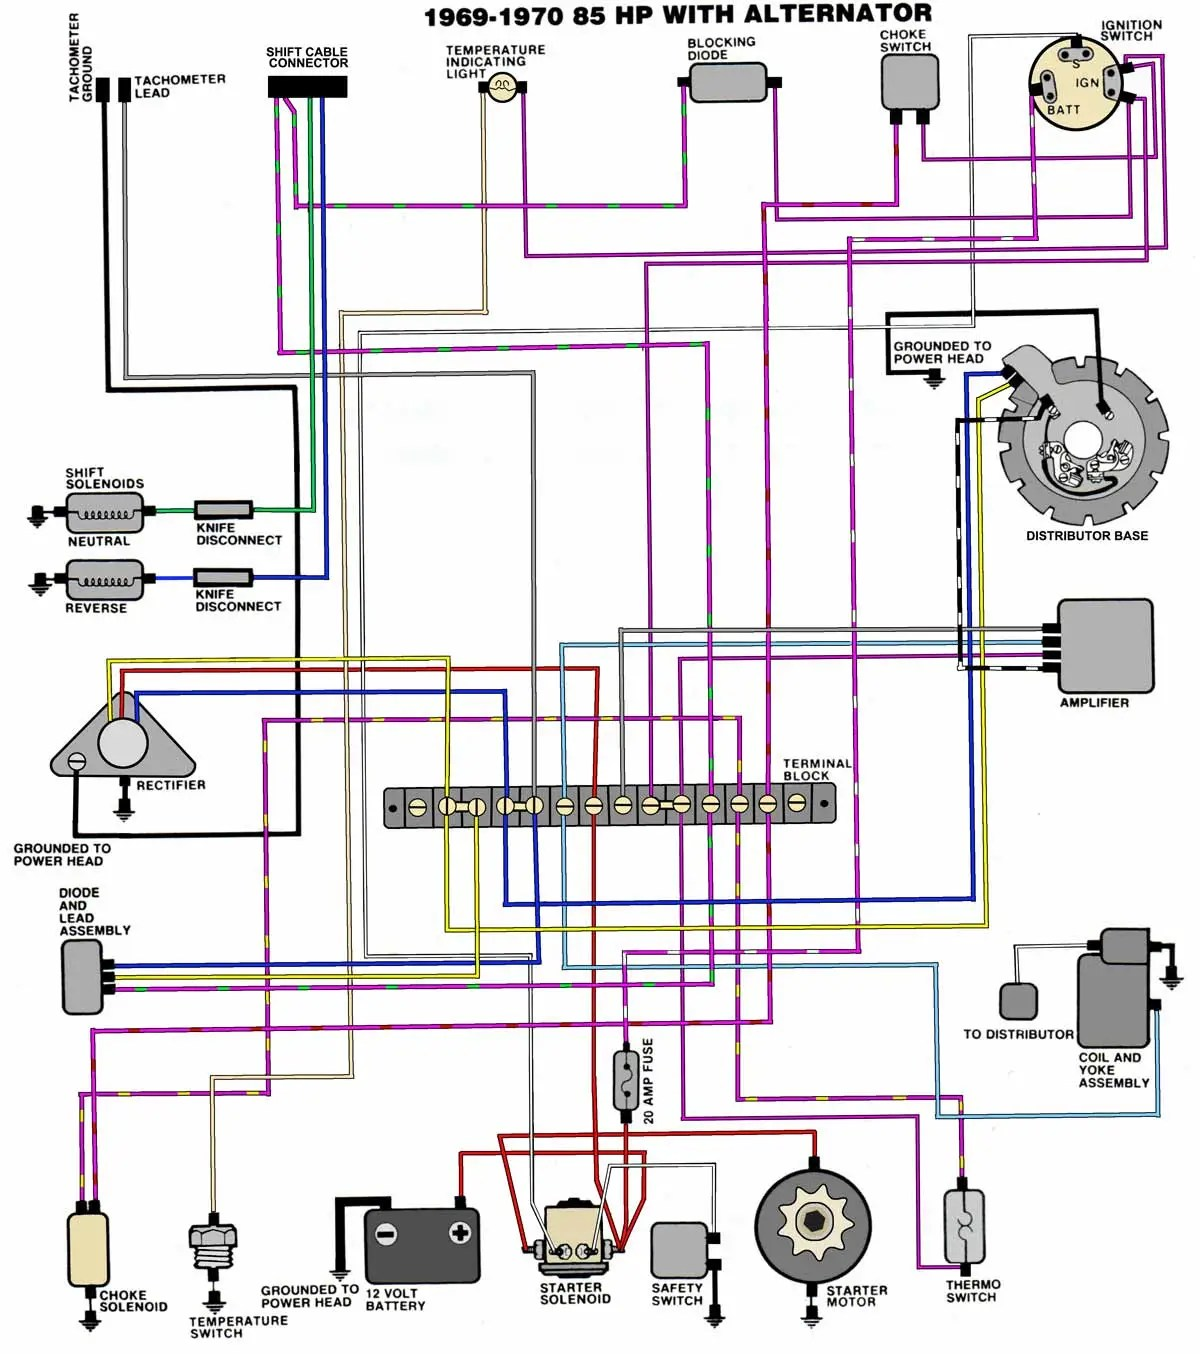 hight resolution of evinrude johnson outboard wiring diagrams mastertech marinev 4 85 hp motors